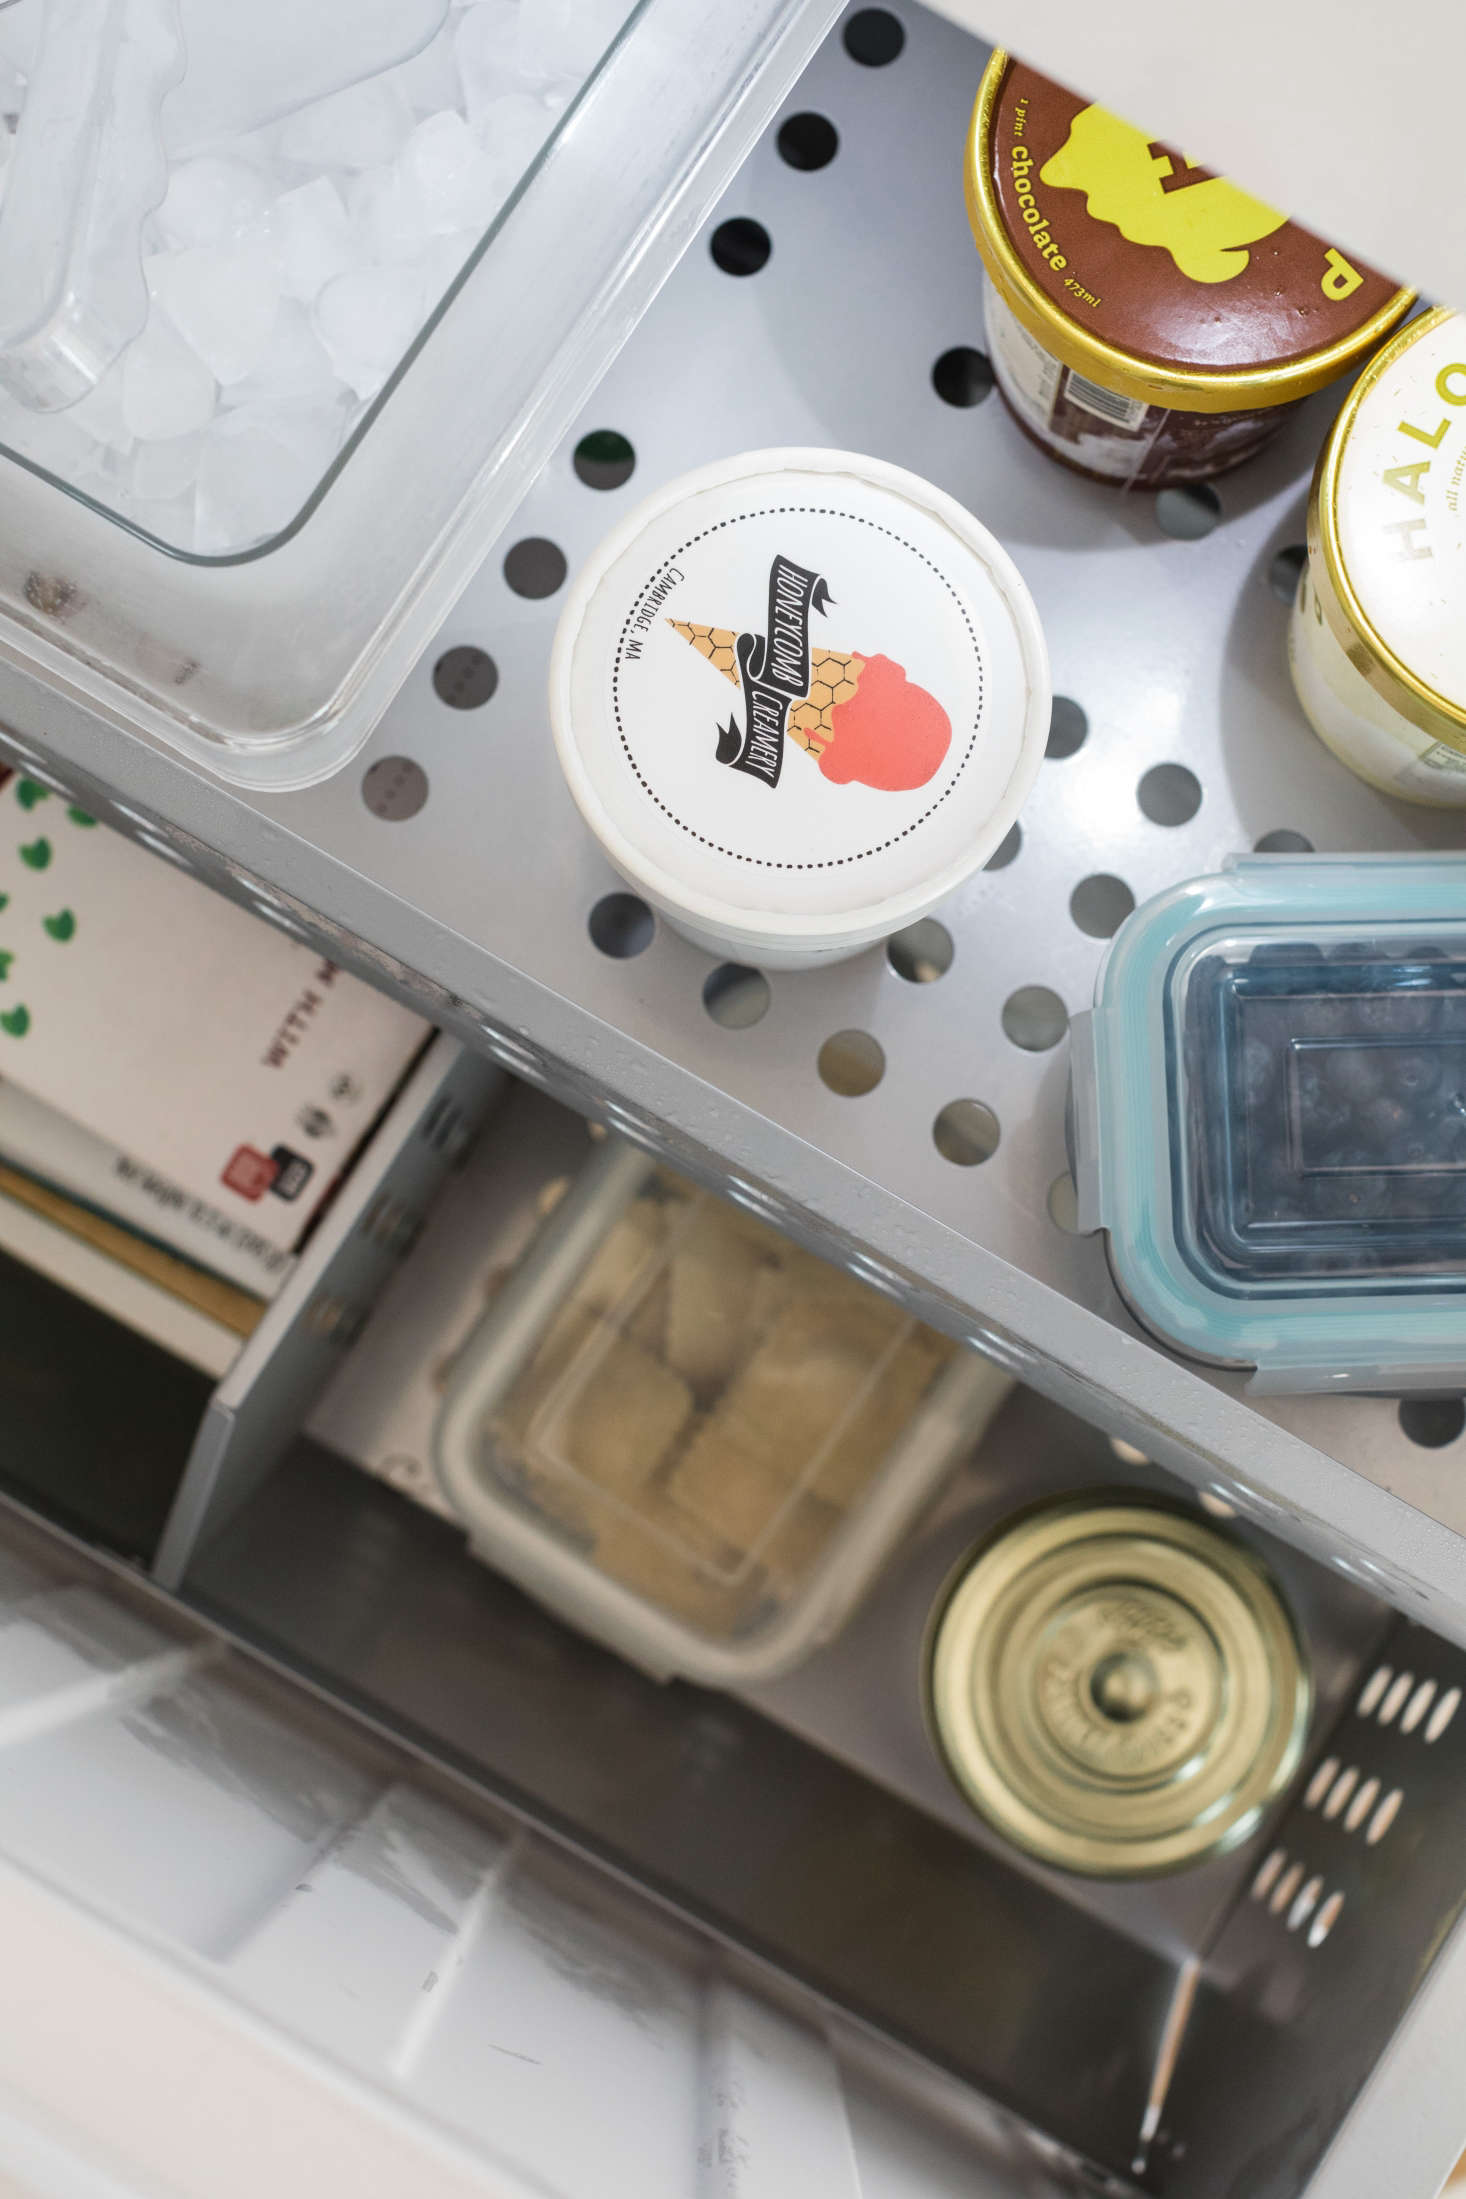 The Bosch freezer compressor is located on the bottom of the fridge, concealed by the freezer drawers—making freezer items more easily accessible.